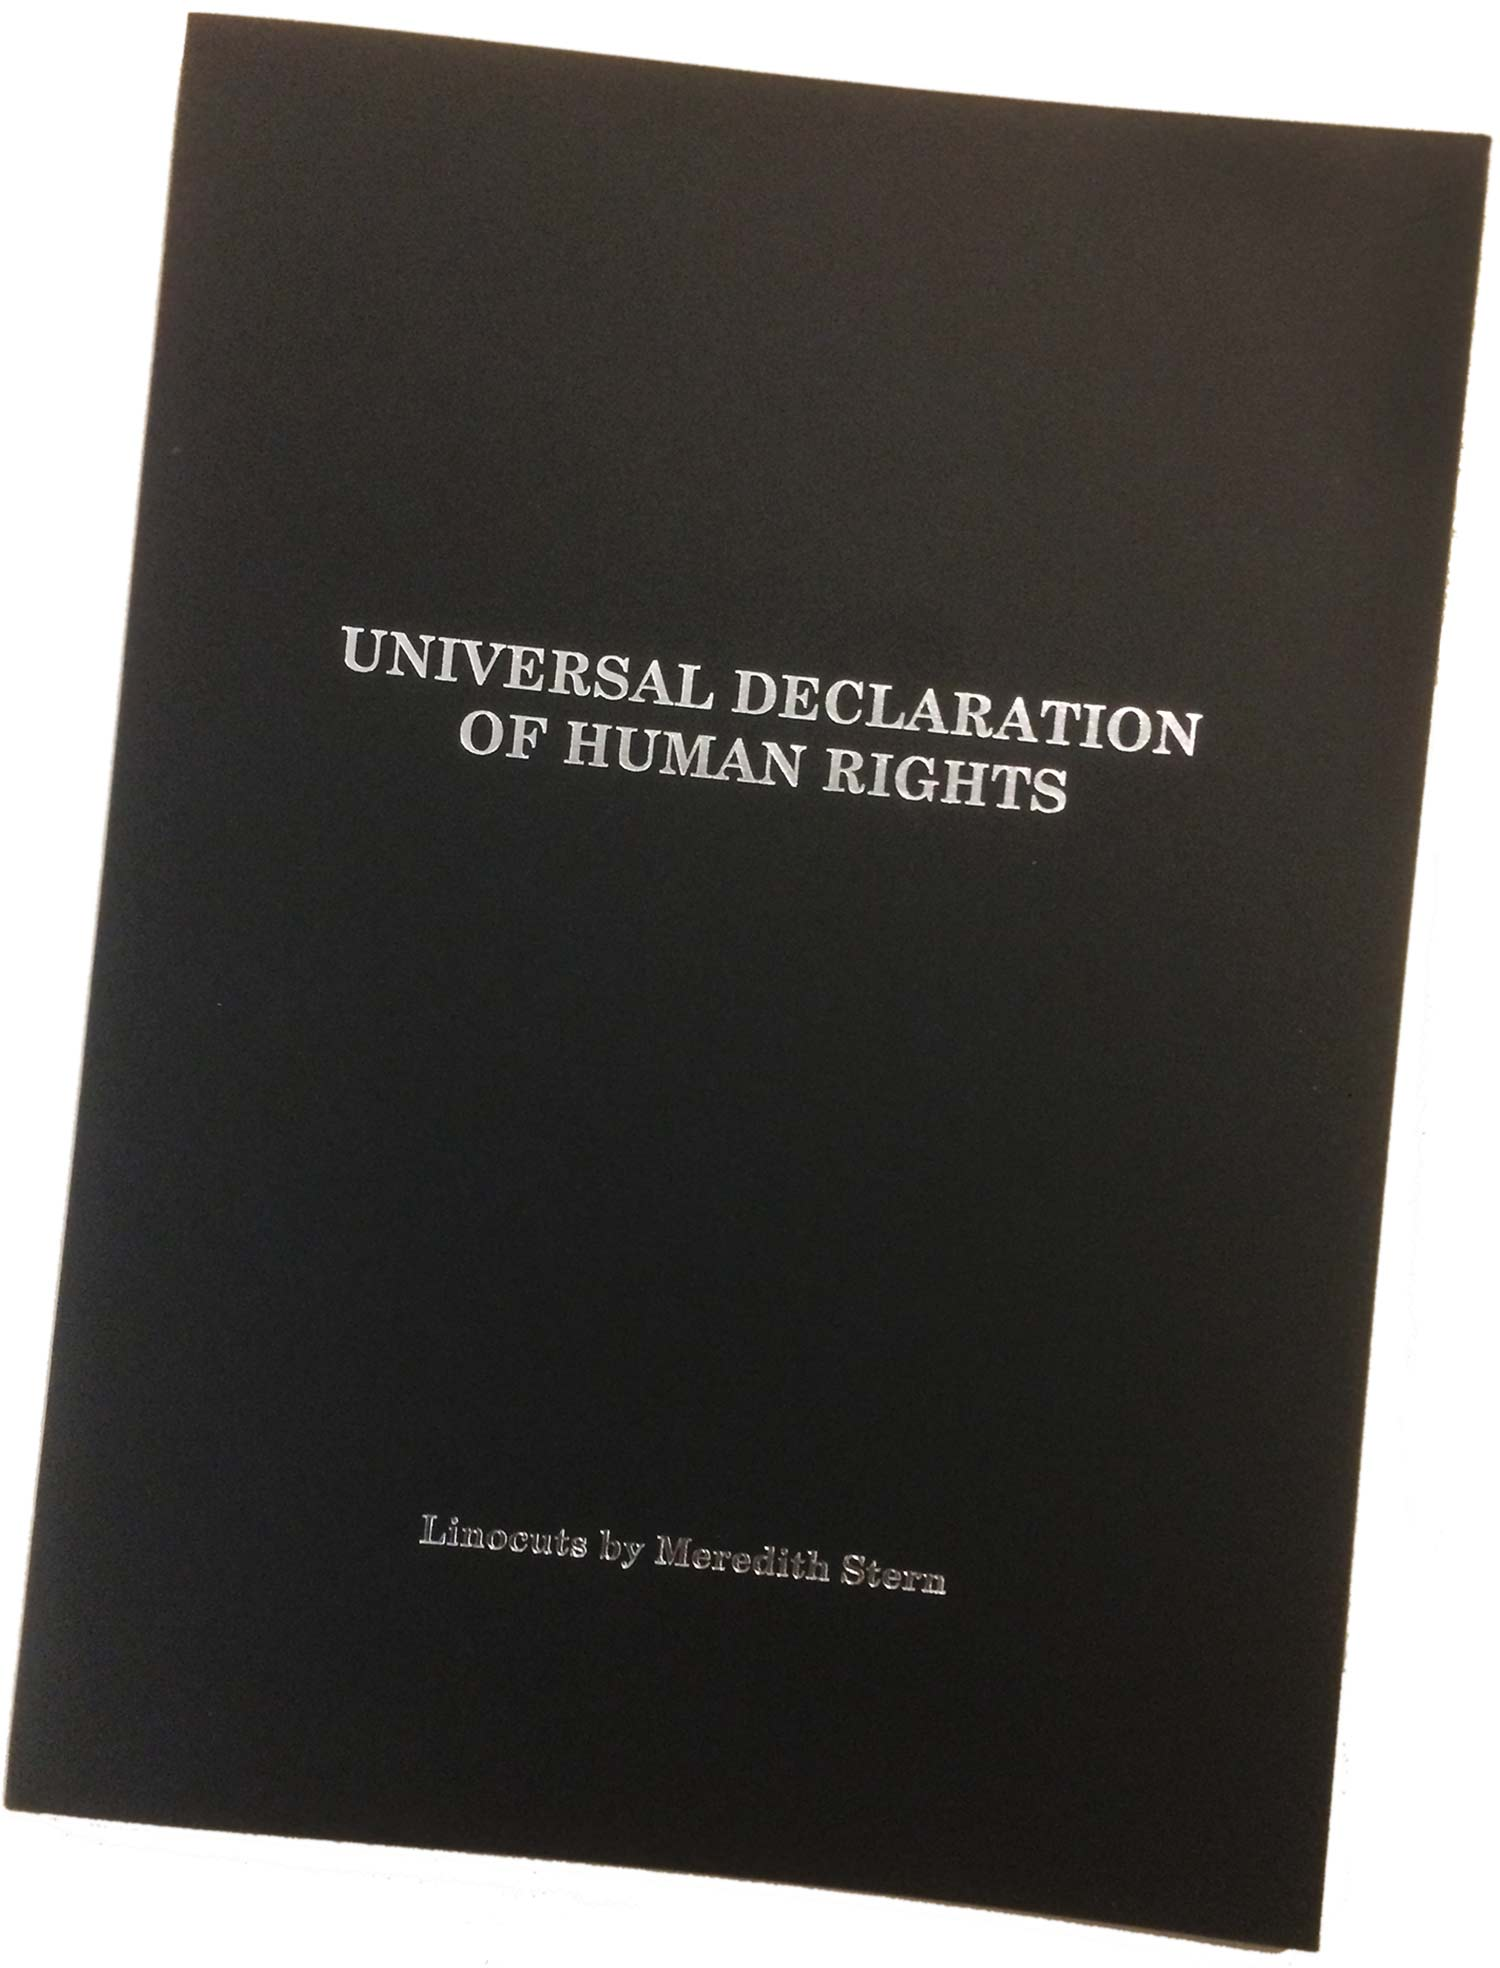 universal declaration of human rights book the entire udhr project as one bound volume